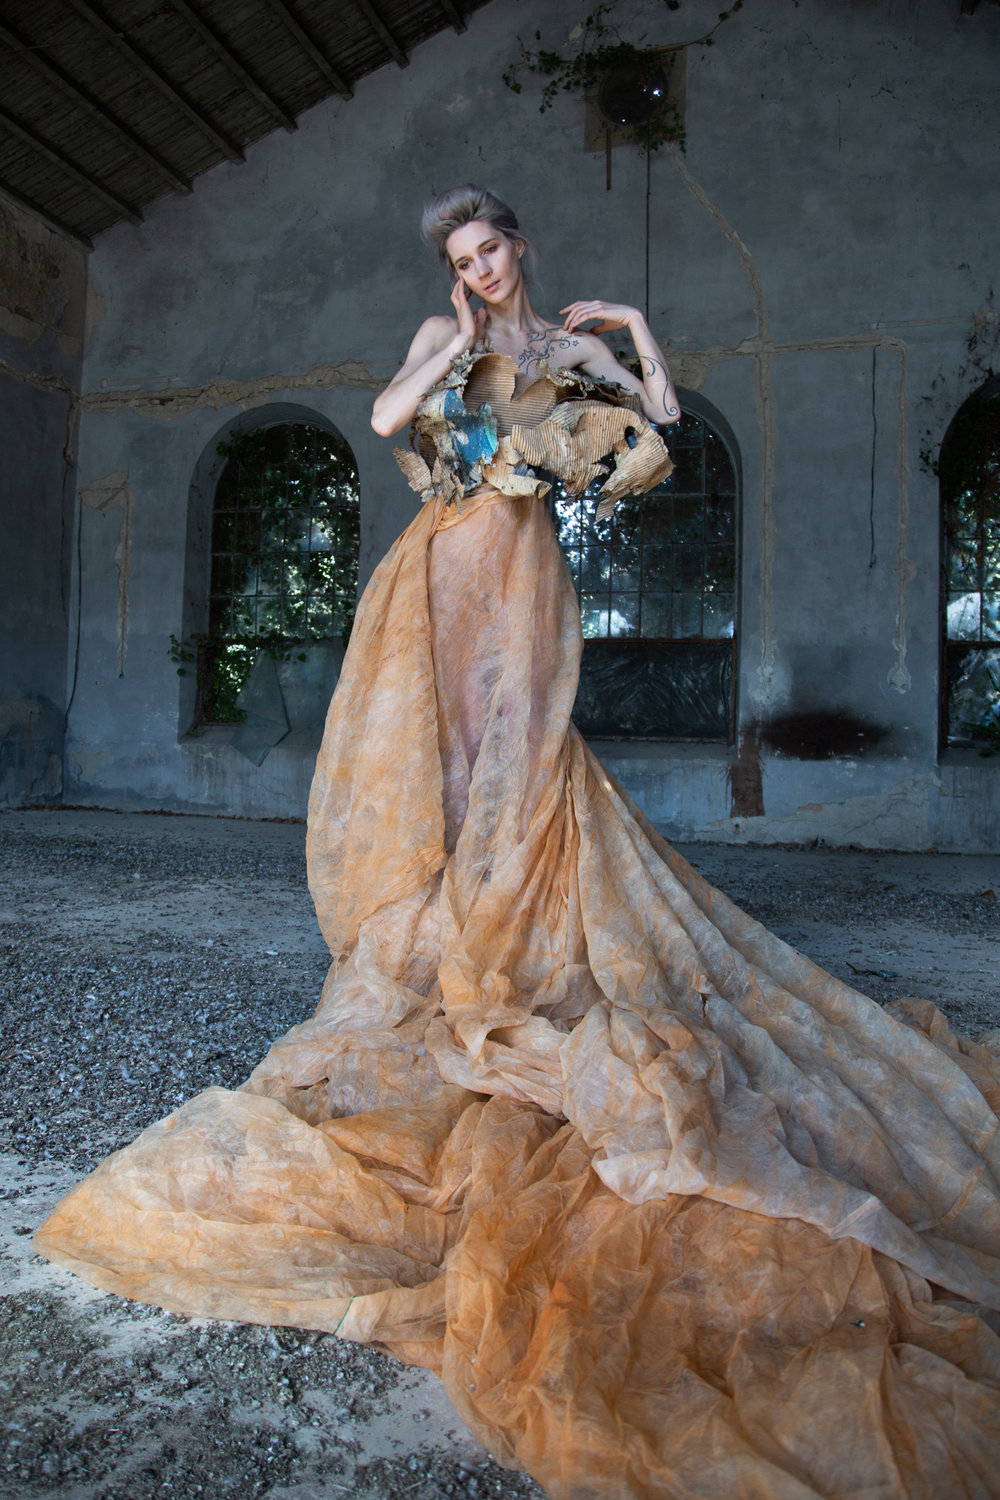 Roxanna Walitzki, shot by Redd Walitzki, in an abandoned paint factory in Pula, in a dress constructed from naturally-weathered cardboard packaging paper, and pigment-stained mesh sourced on site.